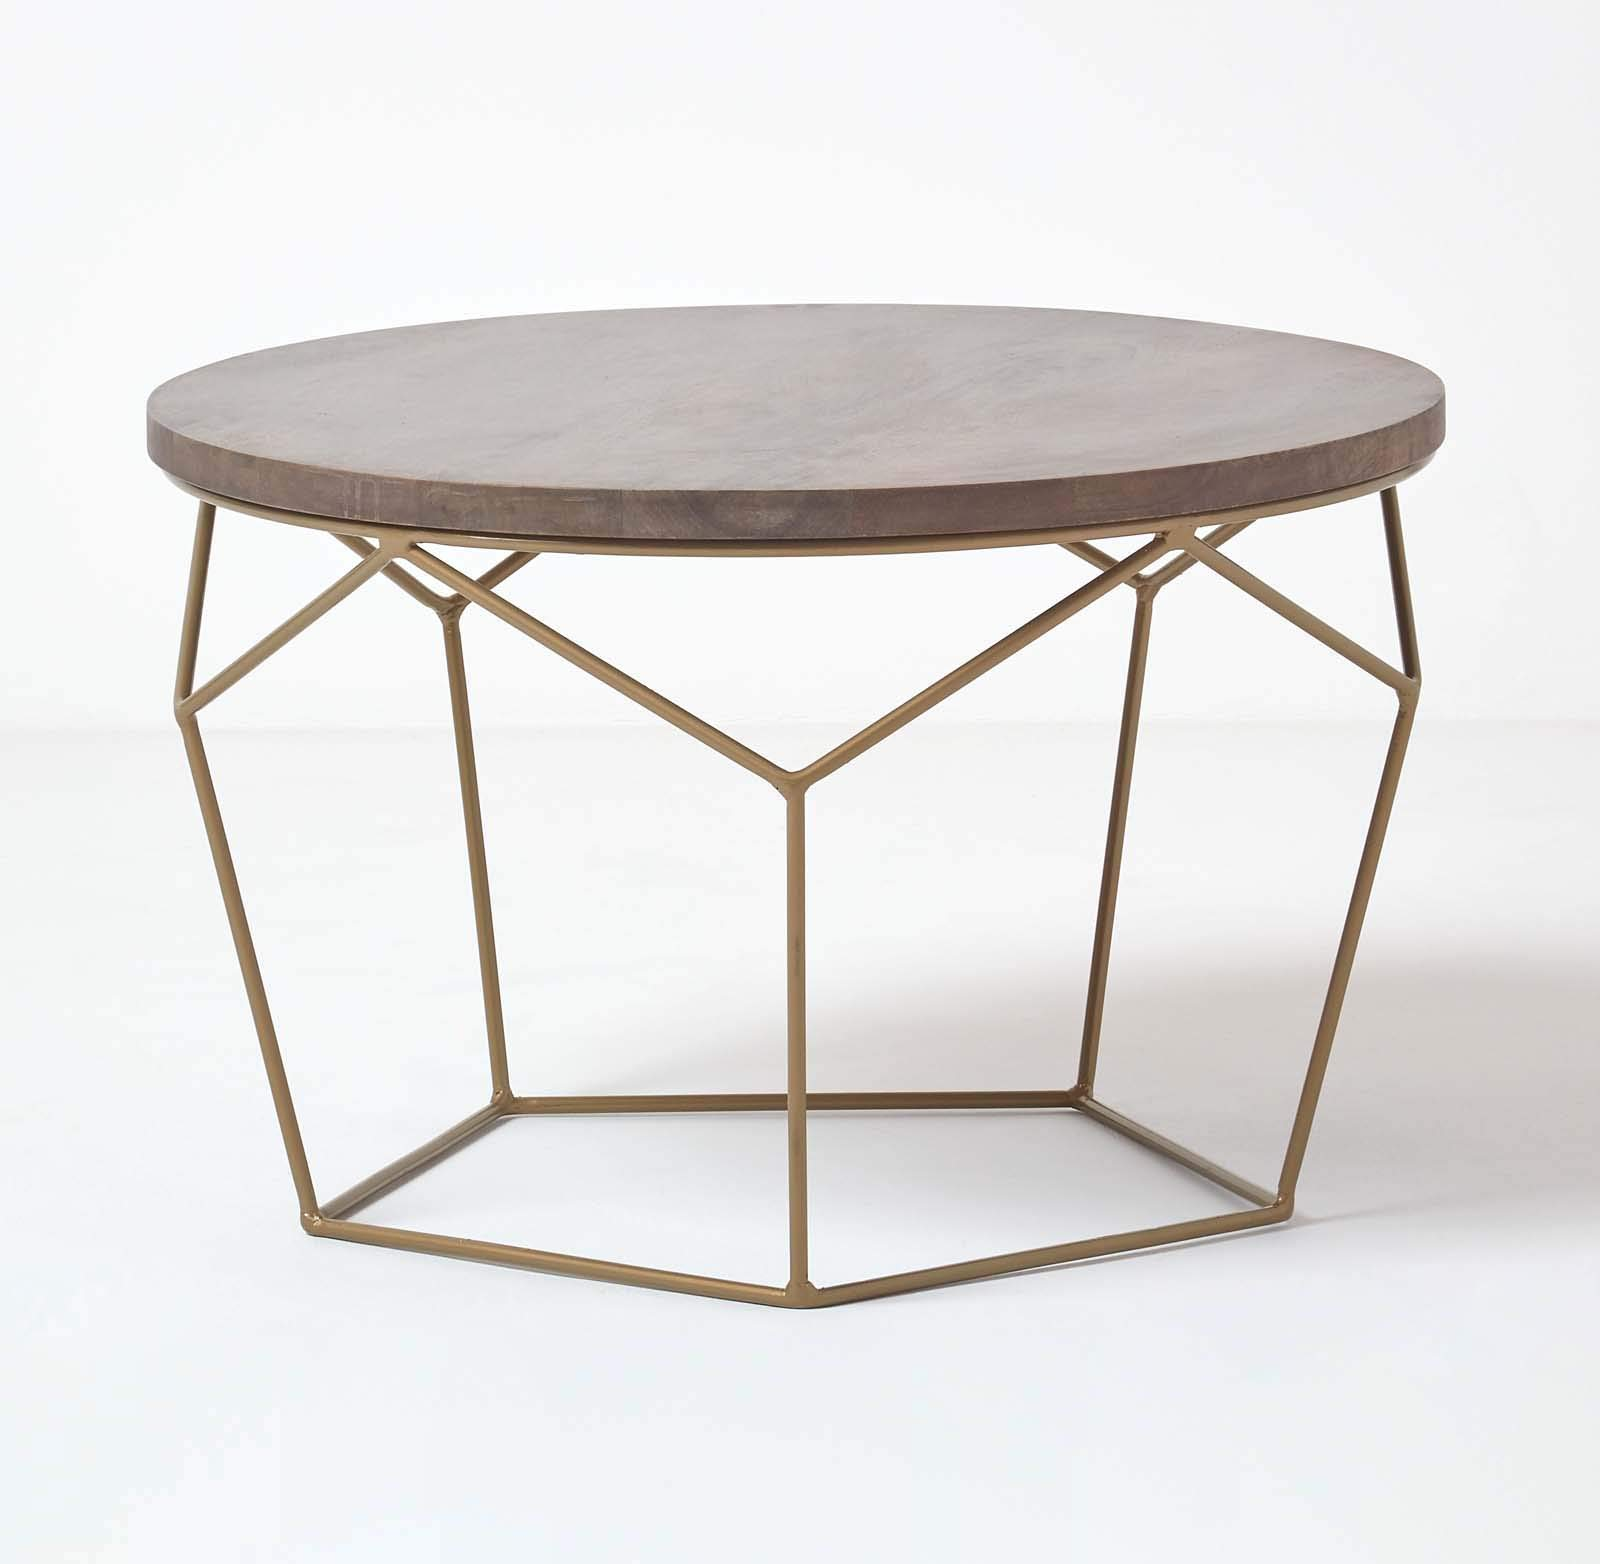 - HOMESCAPES Grey And Gold Industrial Round Coffee Table 70cm Wide